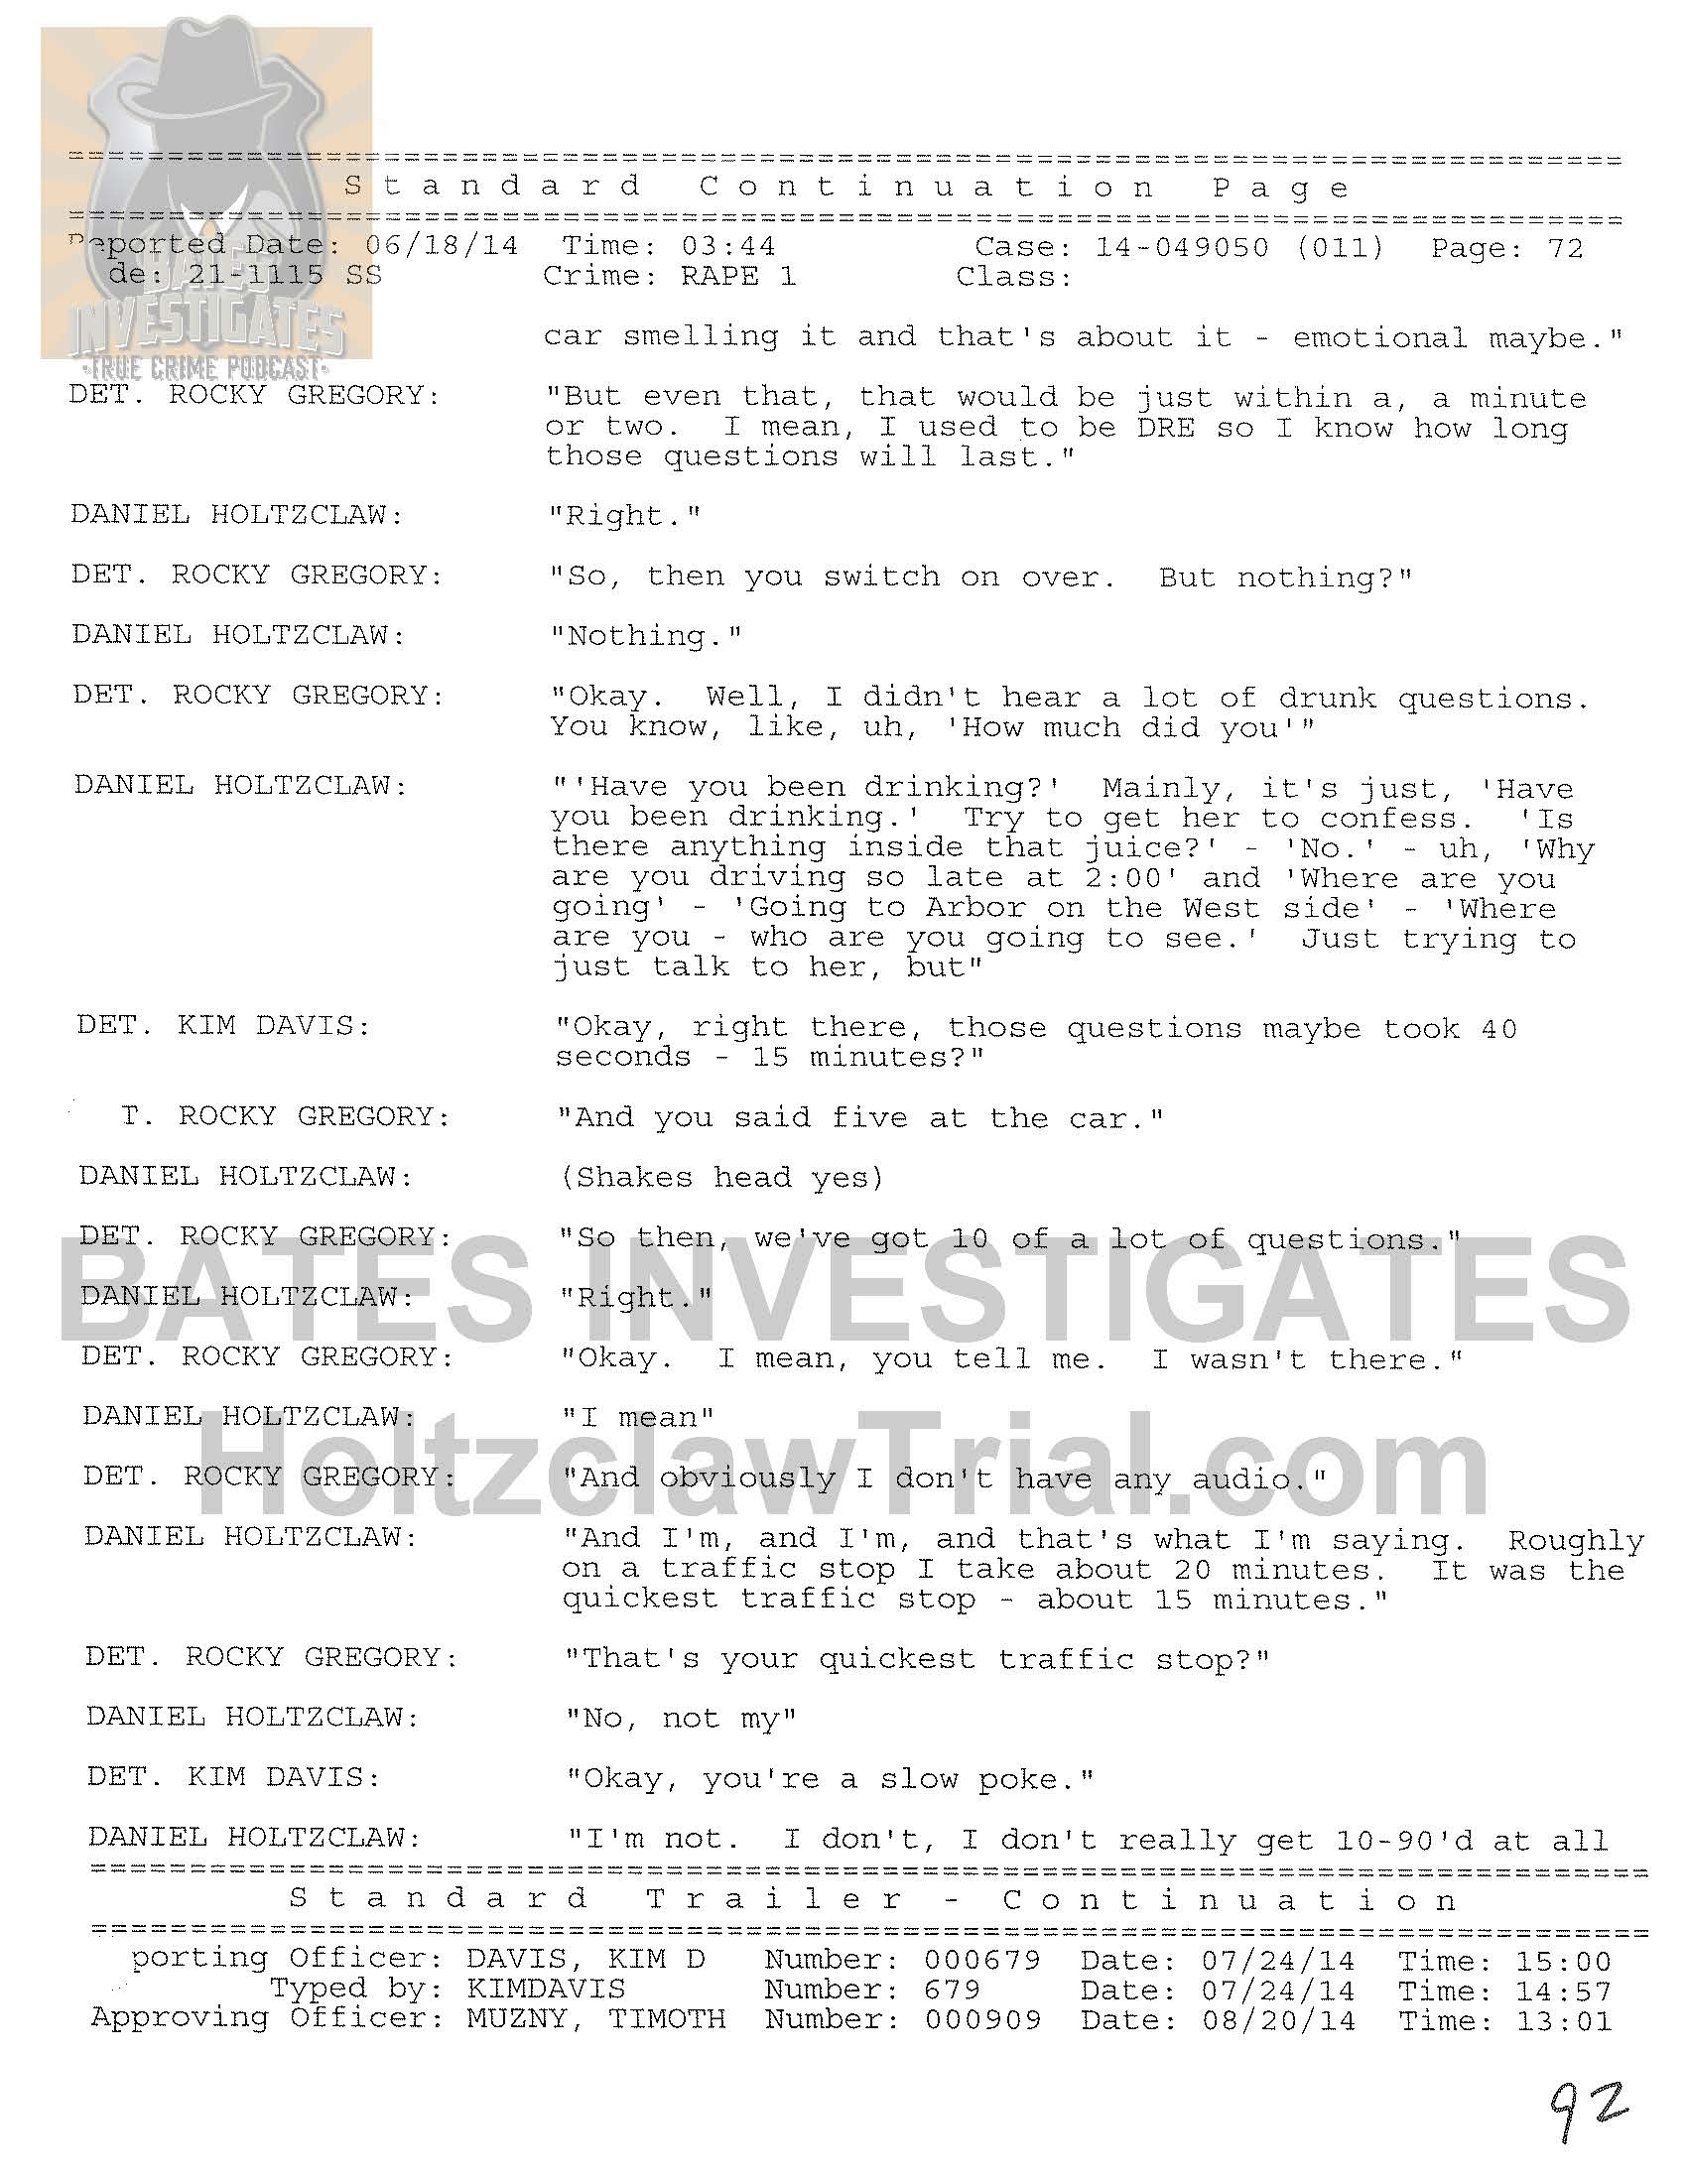 Holtzclaw Interrogation Transcript - Ep02 Redacted_Page_72.jpg